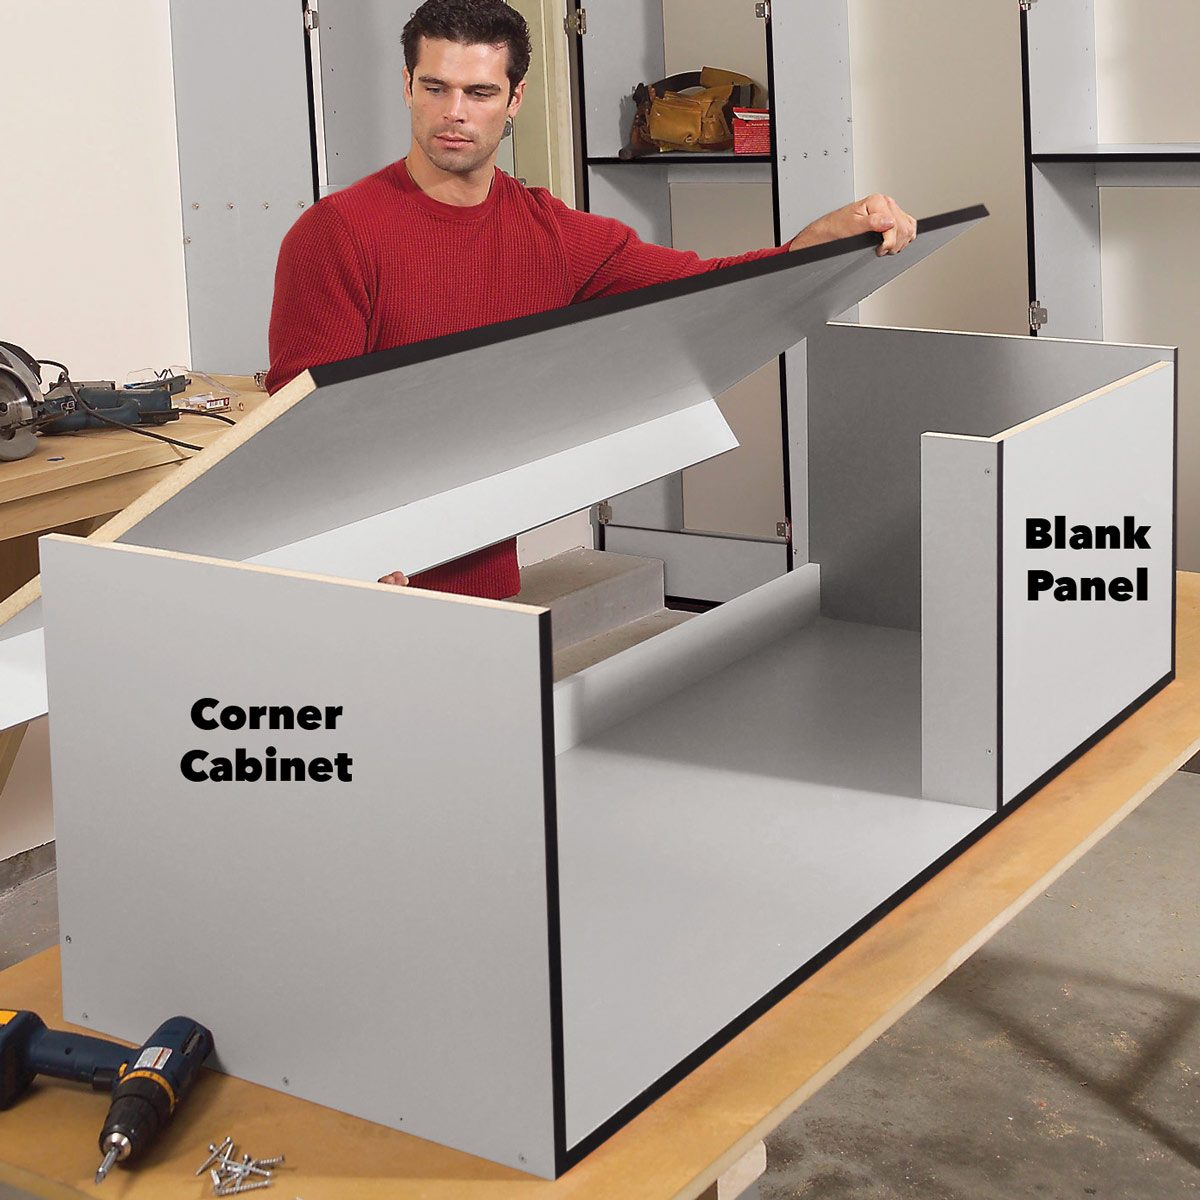 assemble upper cabinets